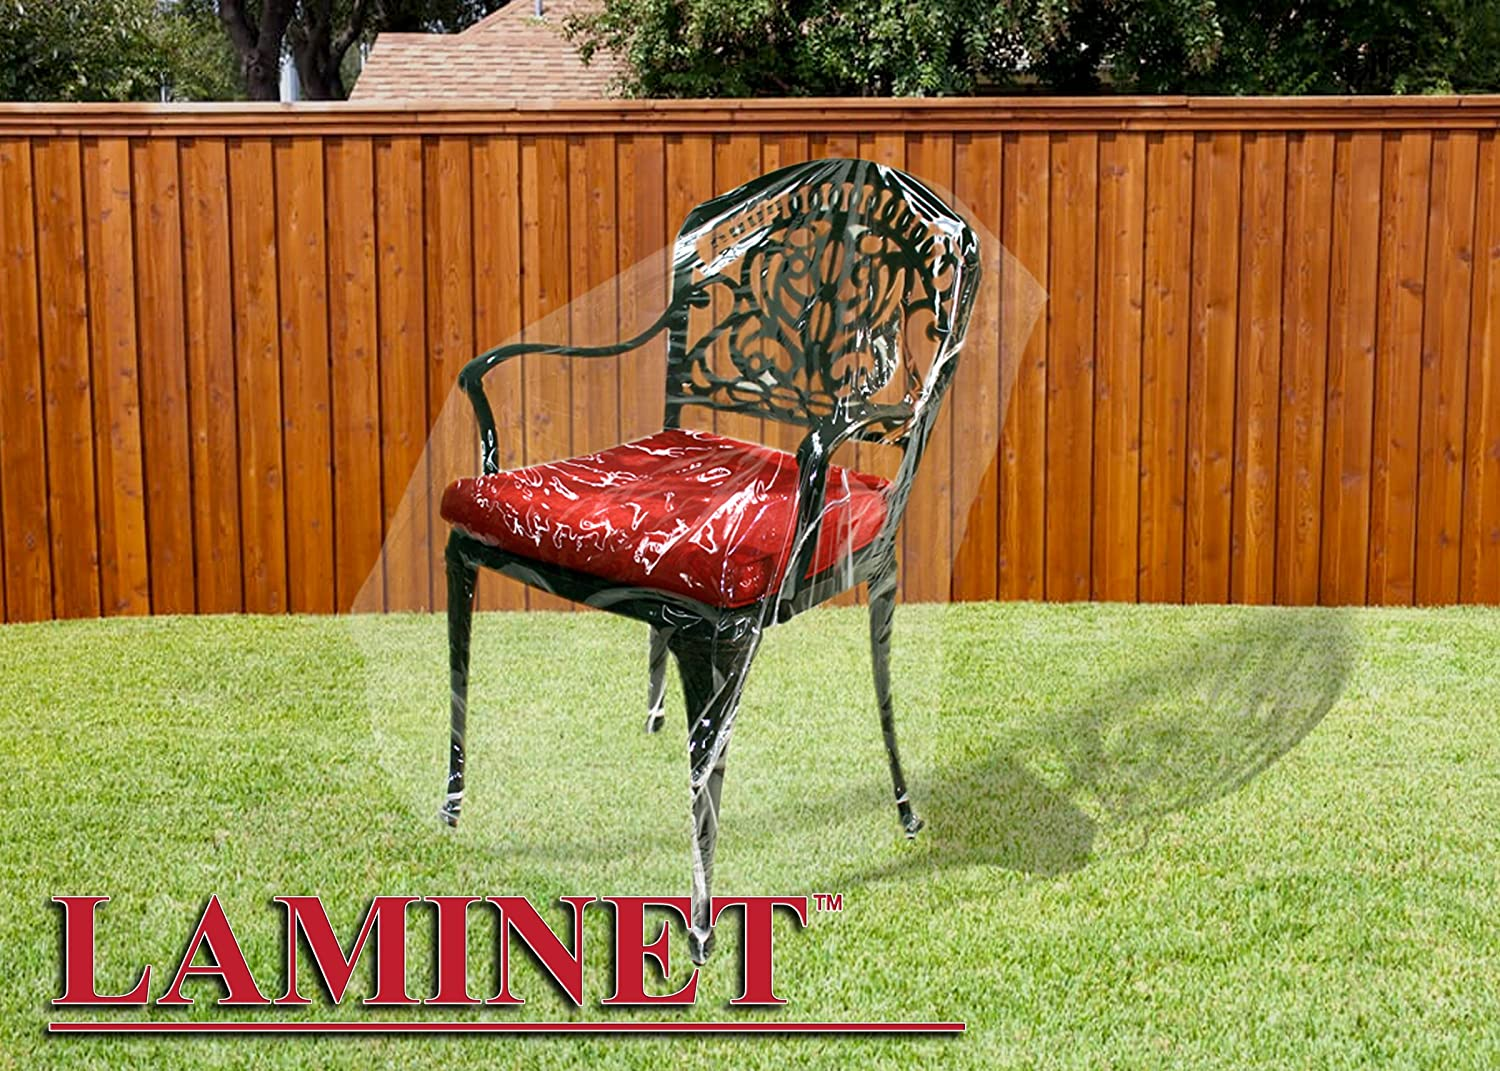 Laminet crystal clear heavy duty waterproof plastic outdoor furniture cover chair cover 3 season protection keep rain snow debris off premium